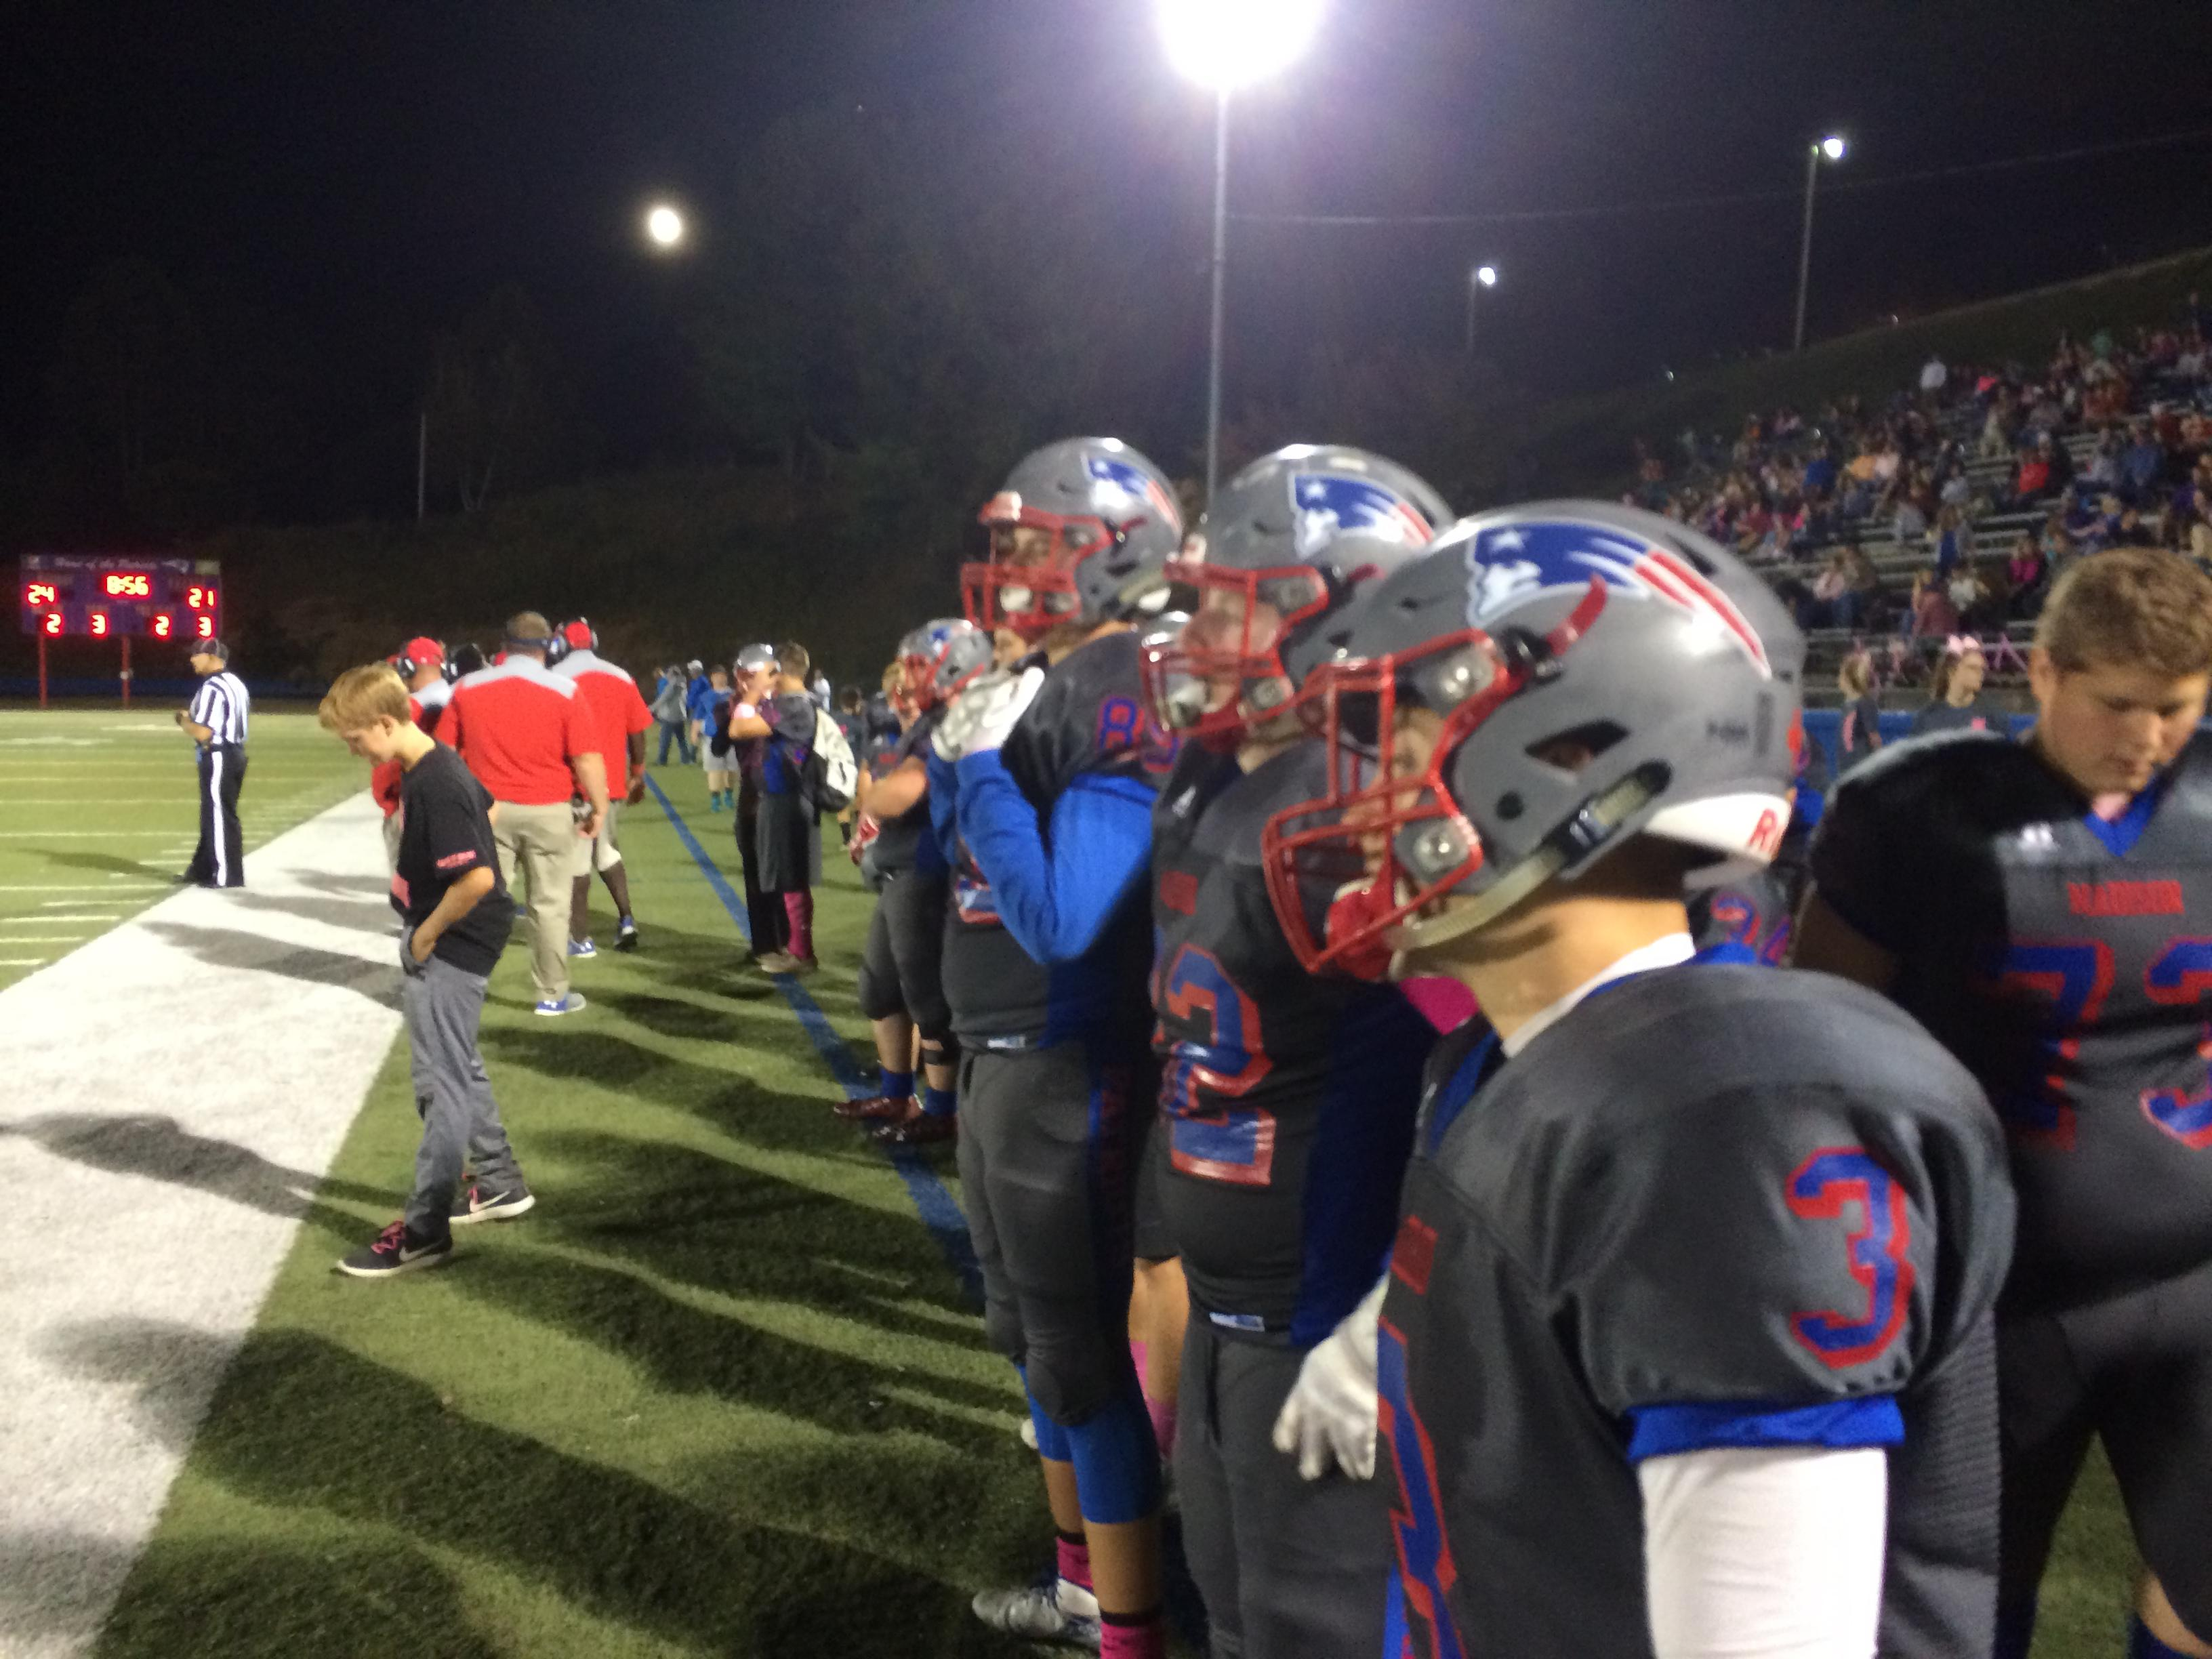 Avery vs Madison, 10-06-2017 (Photo credit: WLOS Staff)